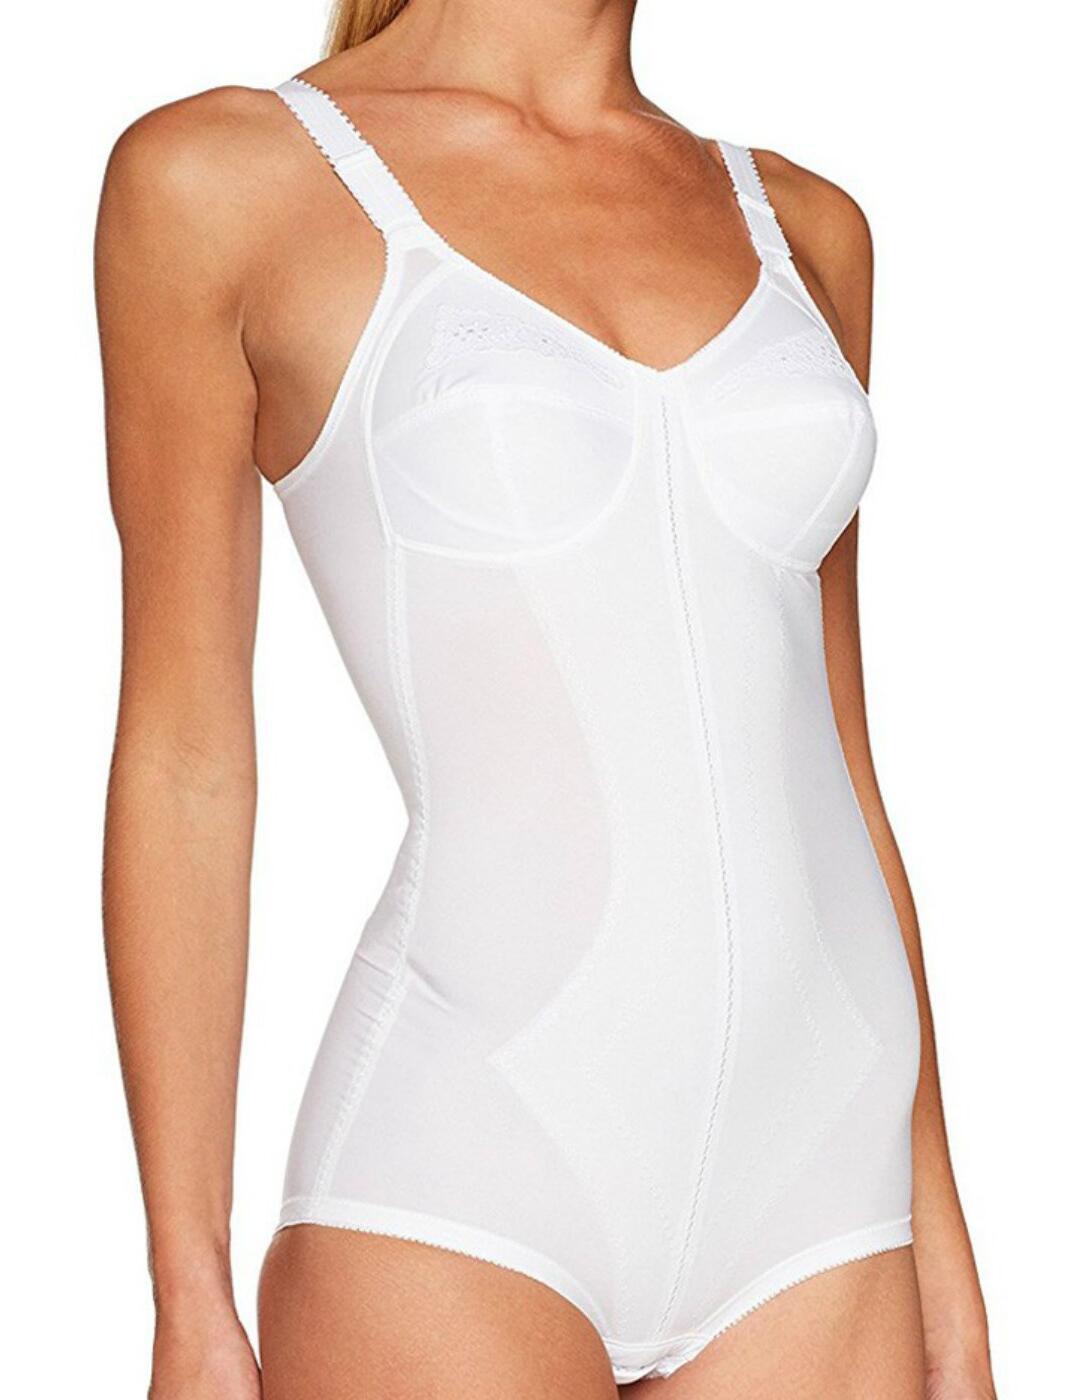 P2858 Playtex I Can't Believe It's A Girdle All In One Bodysuit - P2858 White